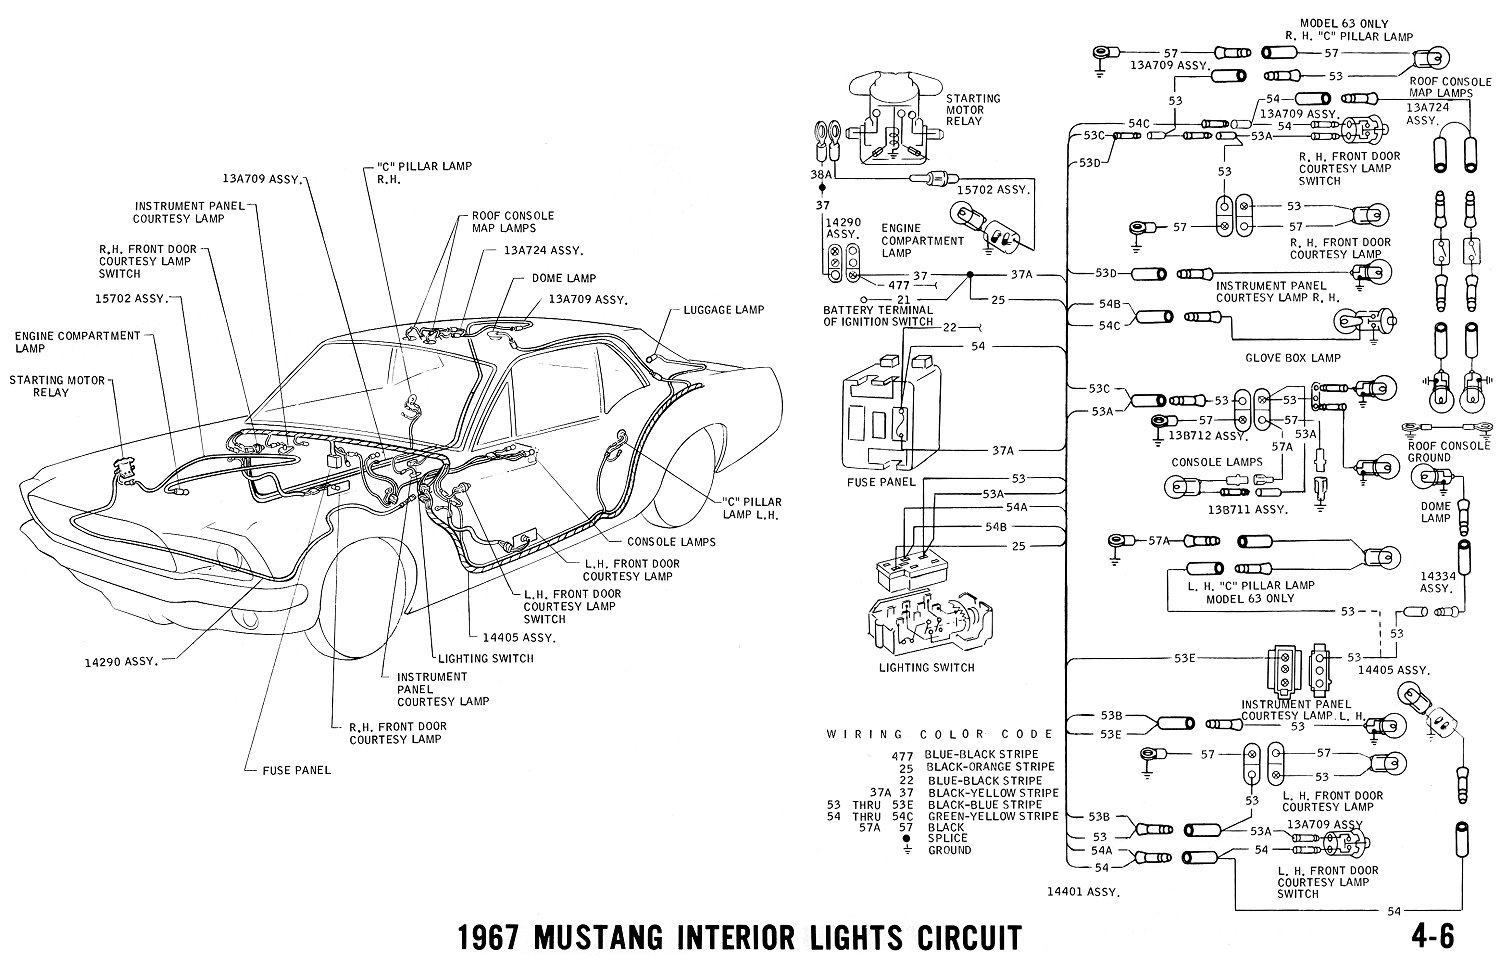 67 Mustang Ignition Switch Wiring Harness Library 66 Chevelle Wire Diagram Images Gallery For Get Free